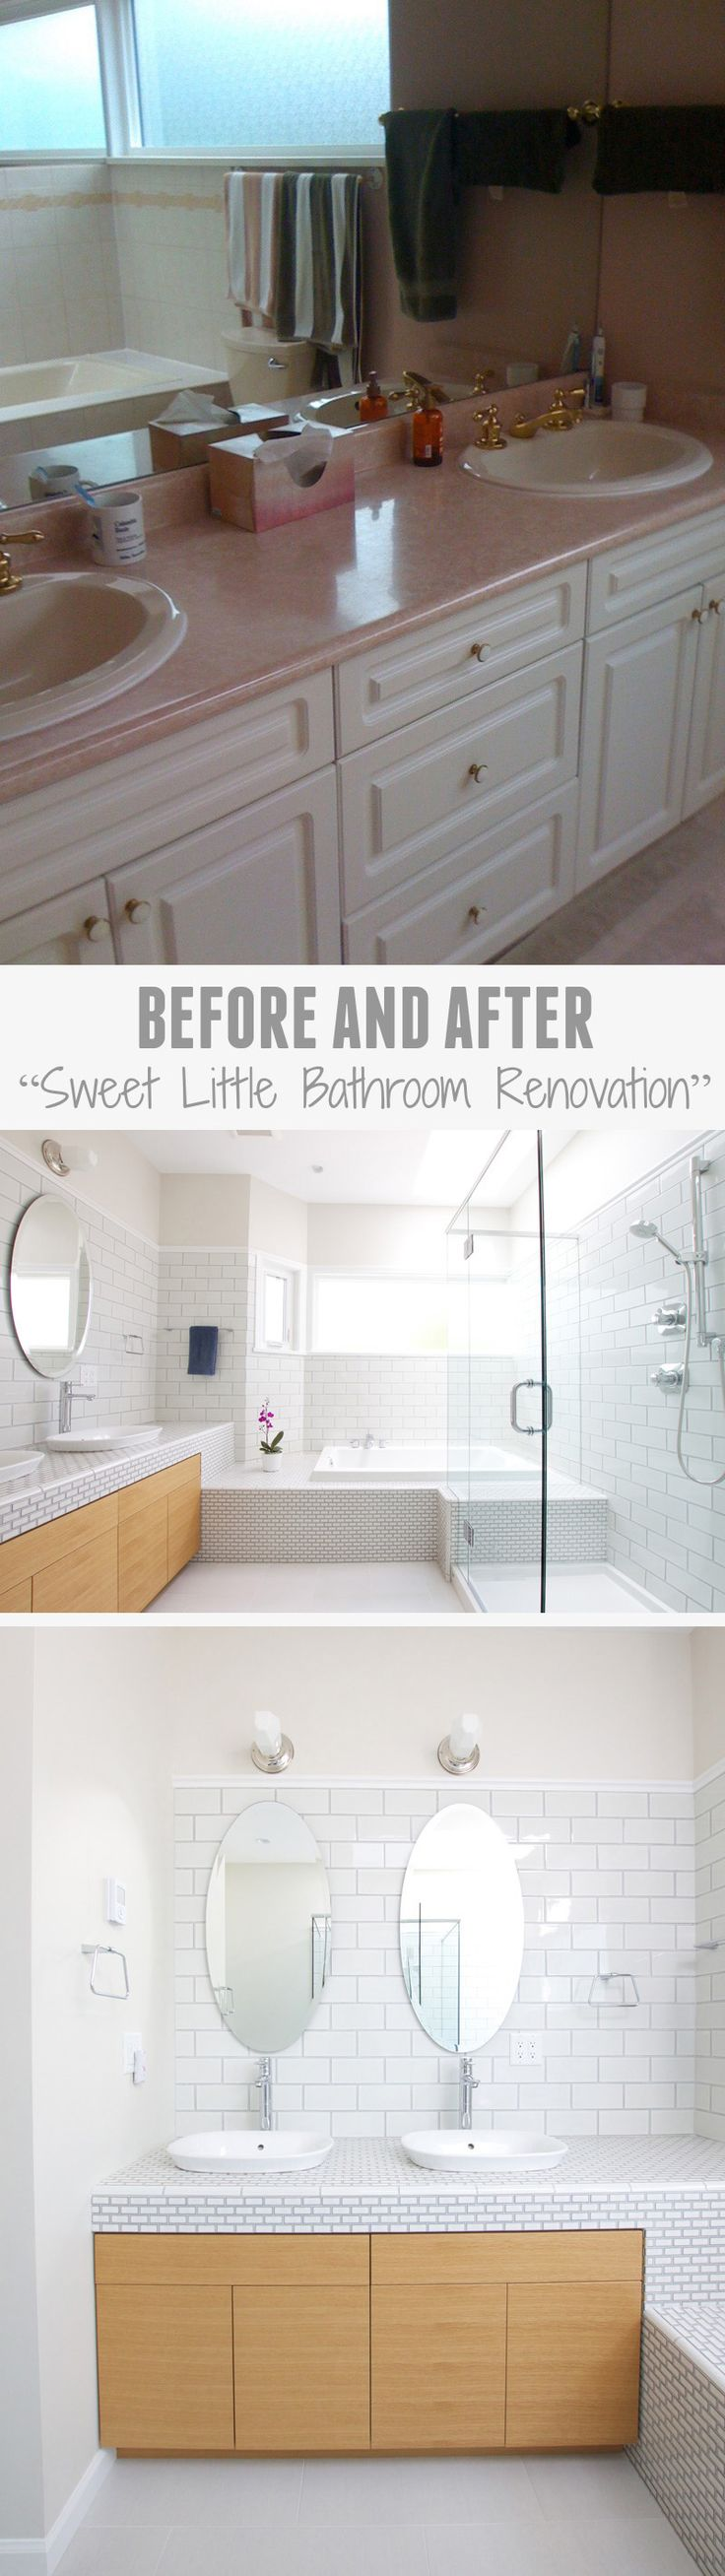 Vancouver architect Marianne Amodio completely transformed a dated pink-ish colored bathroom with gold fixtures, into a bright contemporary bathroom that features white tiles, wood cabinet doors and a glass shower.